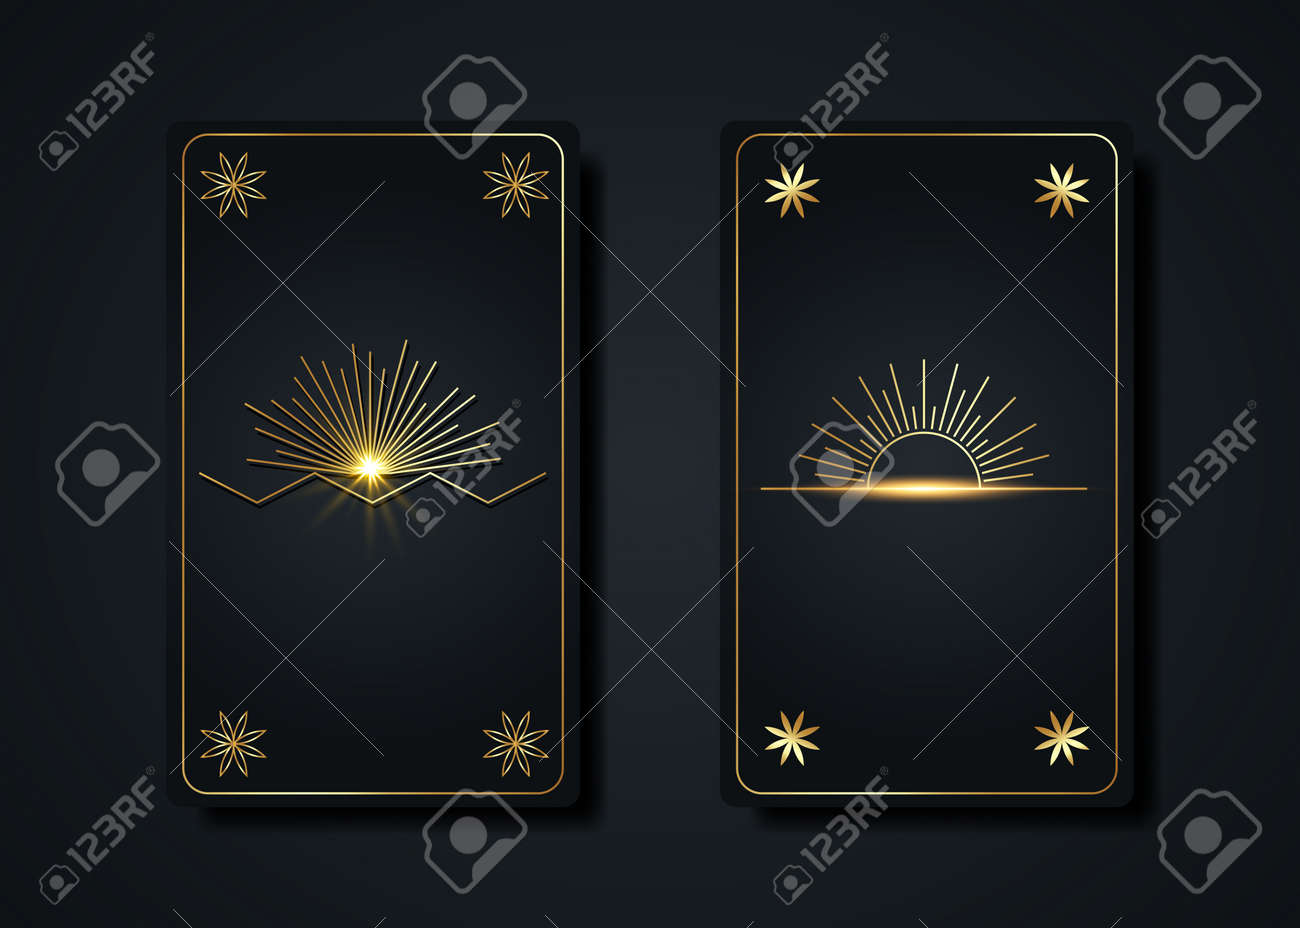 Set magical tarot cards, gold magic Sun boho style, sacred geometry sign, esoteric spiritual symbols, Flower of Life. Luxury Seed of life flowers. Vector collection golden and black background - 172677509